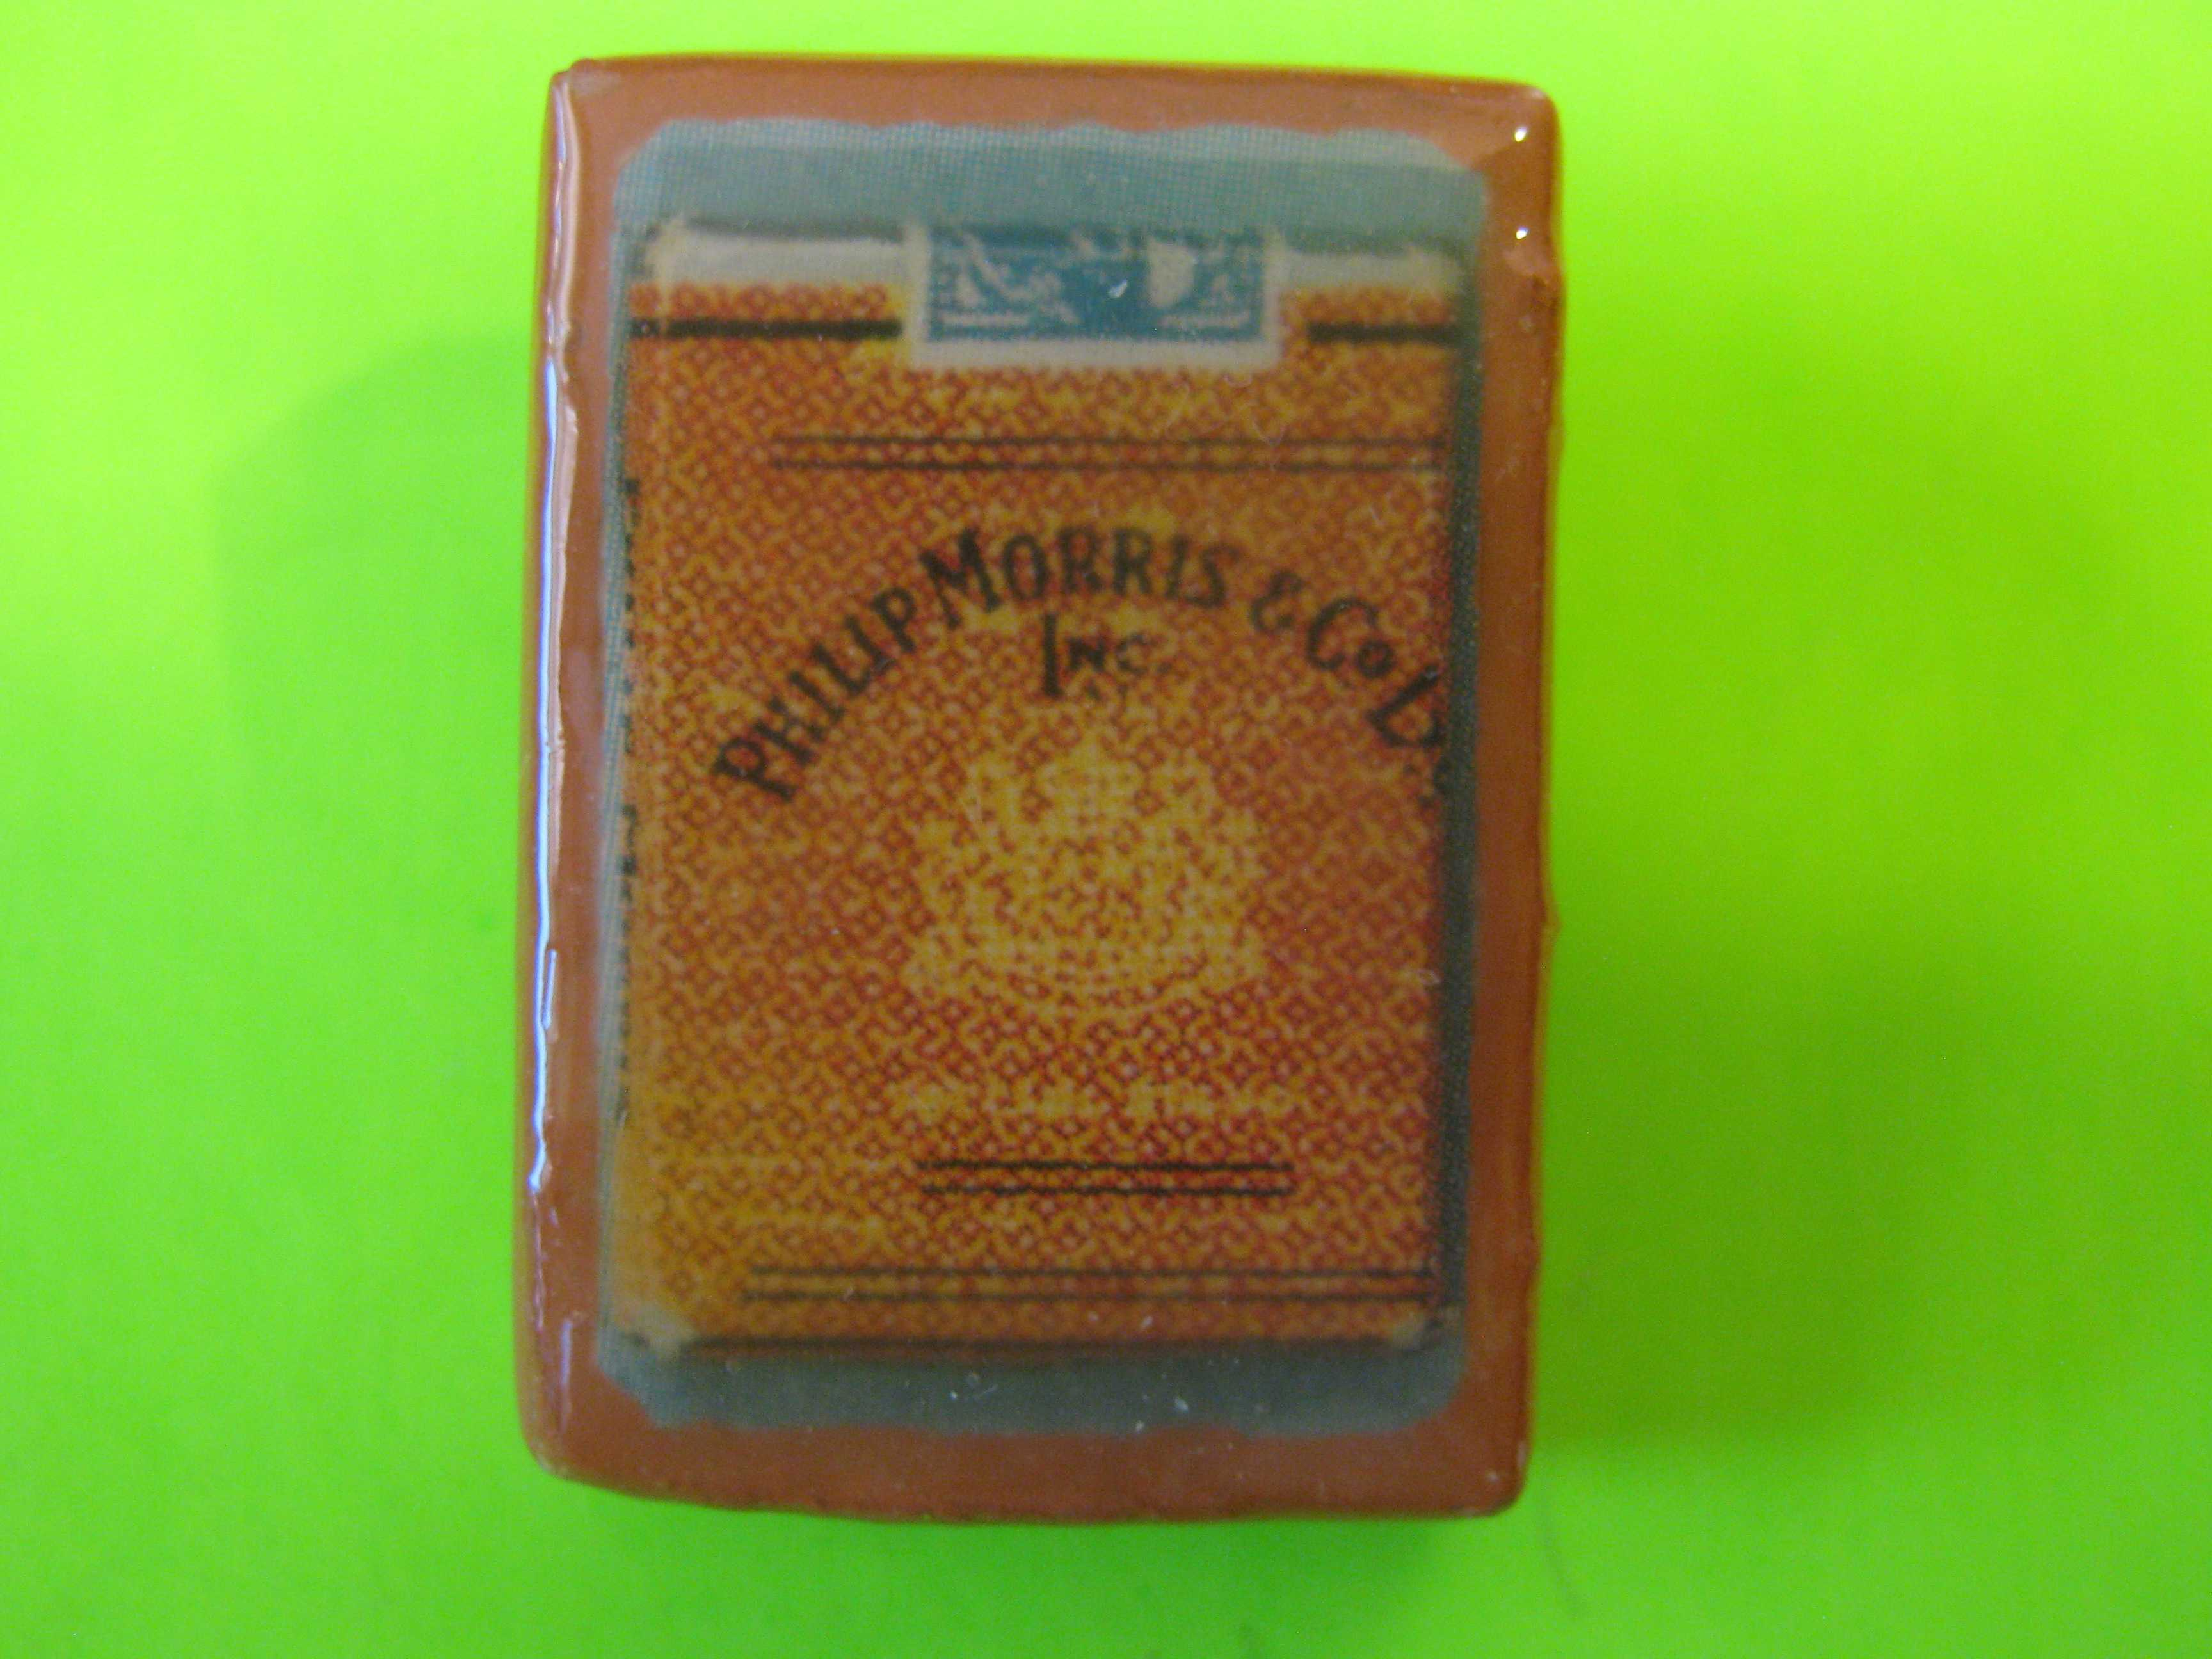 Phillip Morris Cigarettes Promo Button Wood with Brass Loop Shank